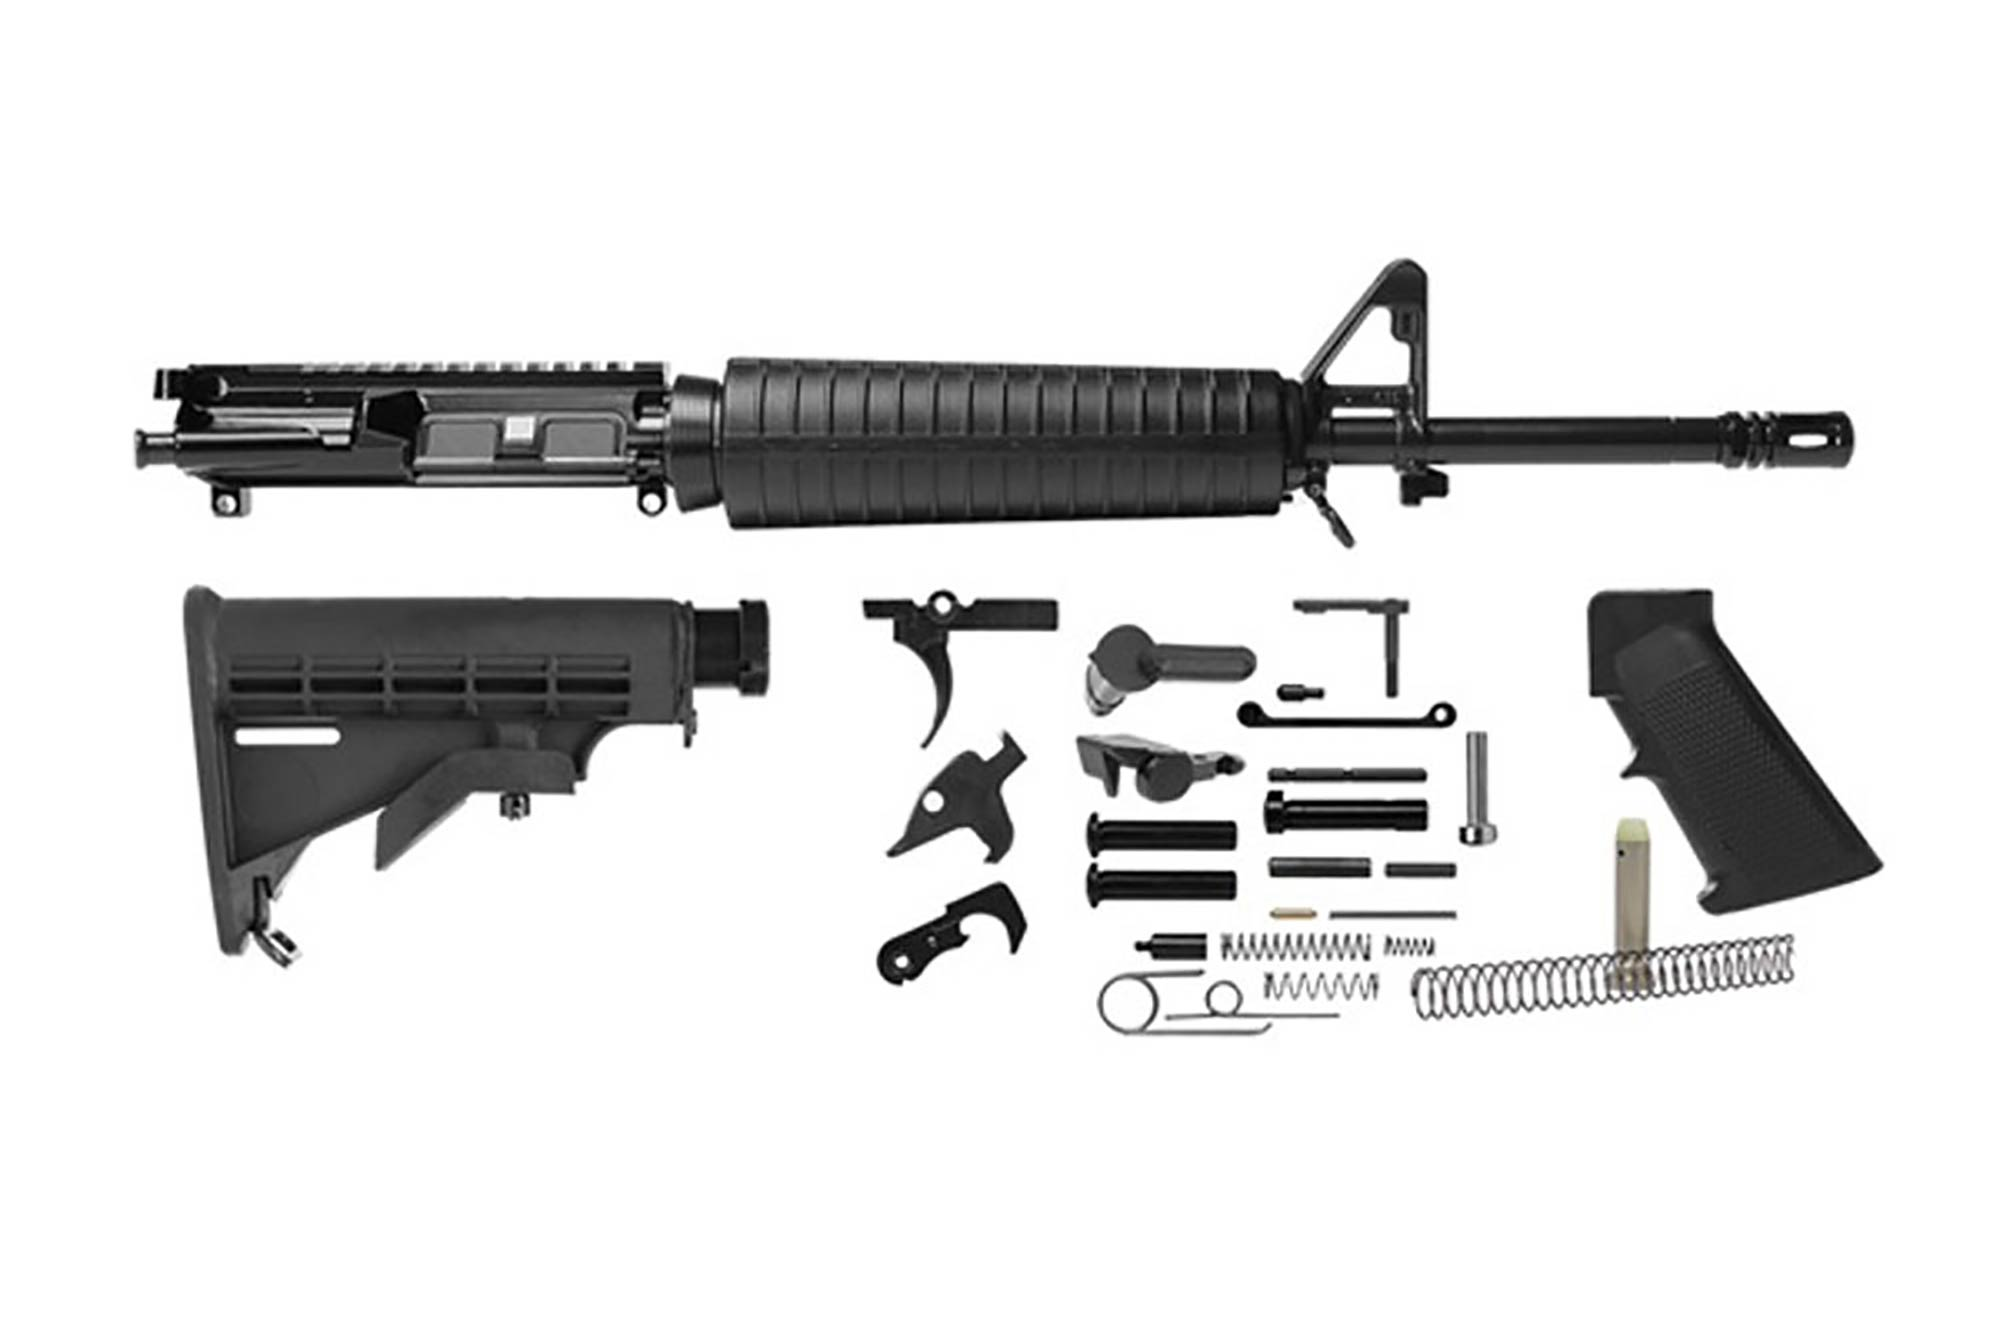 Parts For Your Very Own AR